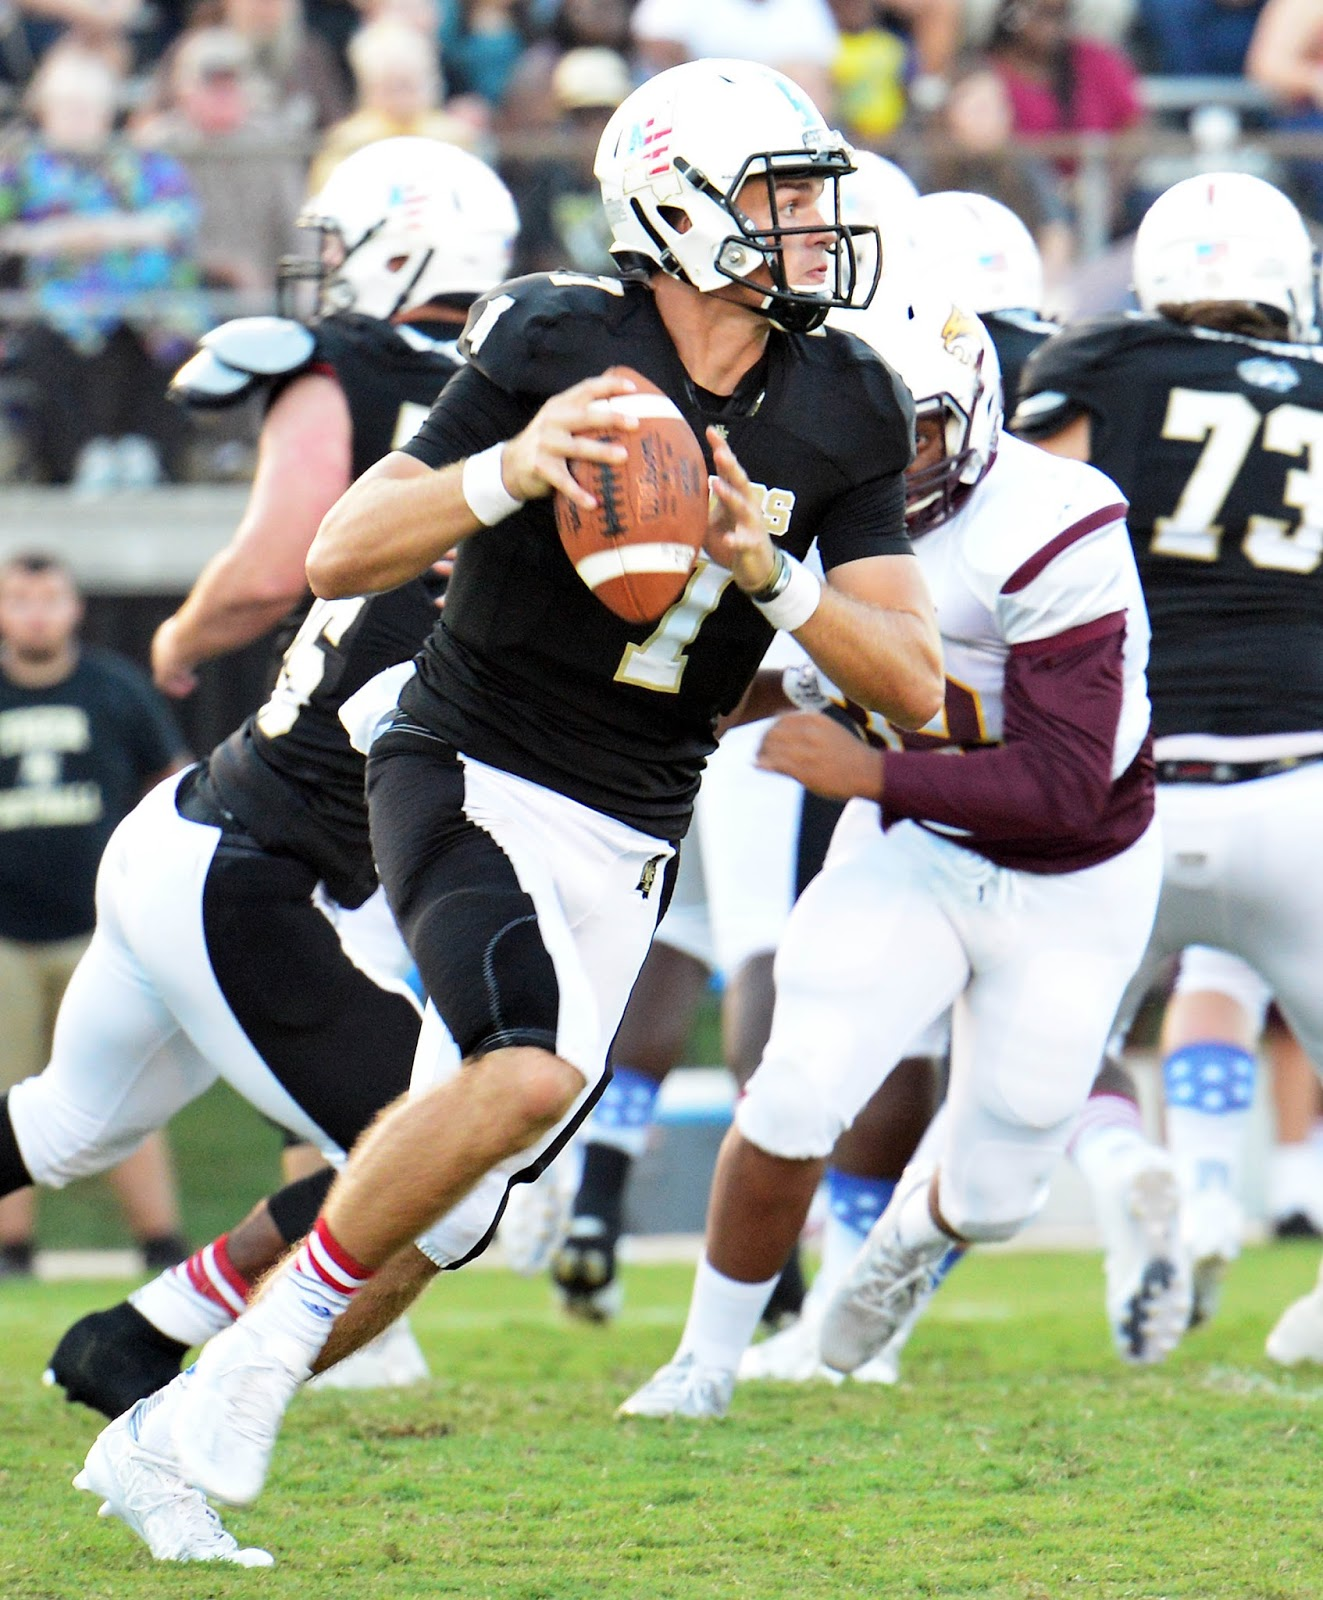 ne fb nemccvspearlriver5 northeast mississippi community college quarterback mason cunningham 7 looks for an open receiver during action in the first